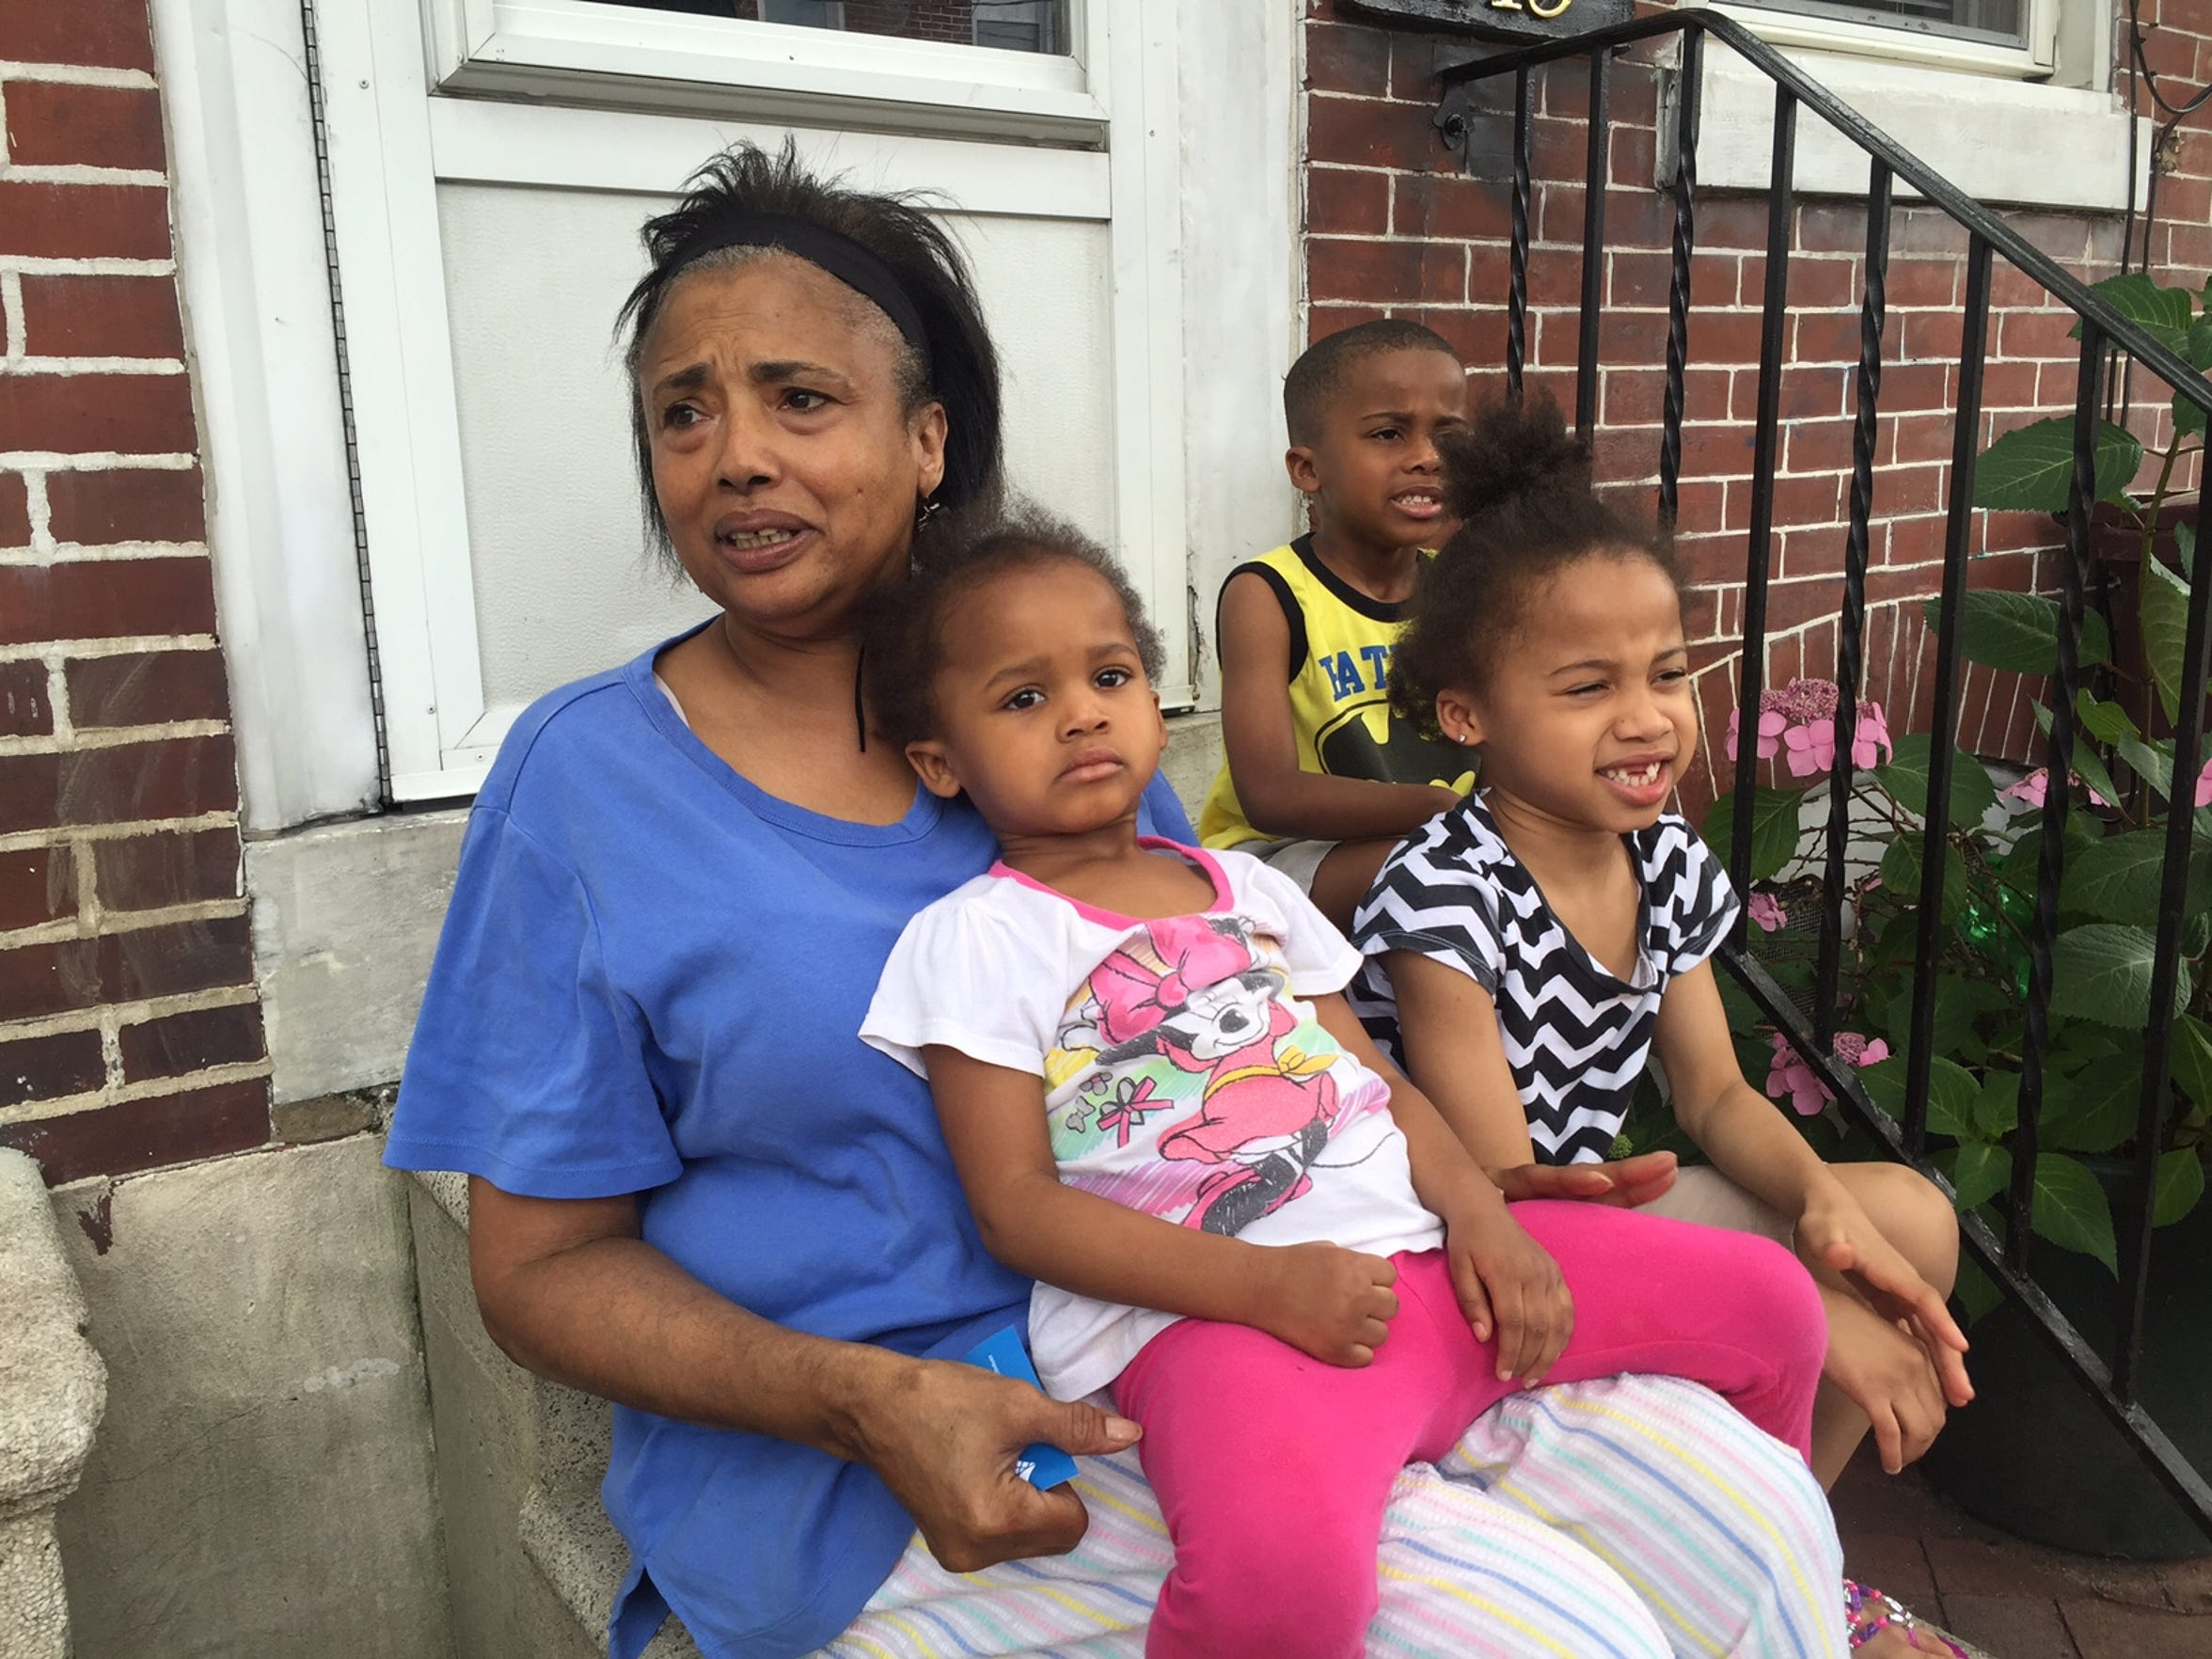 Darlene VanRiper, grandmother of one of the four children shot Tuesday, said she worries about Hedgeville and Wilmington.